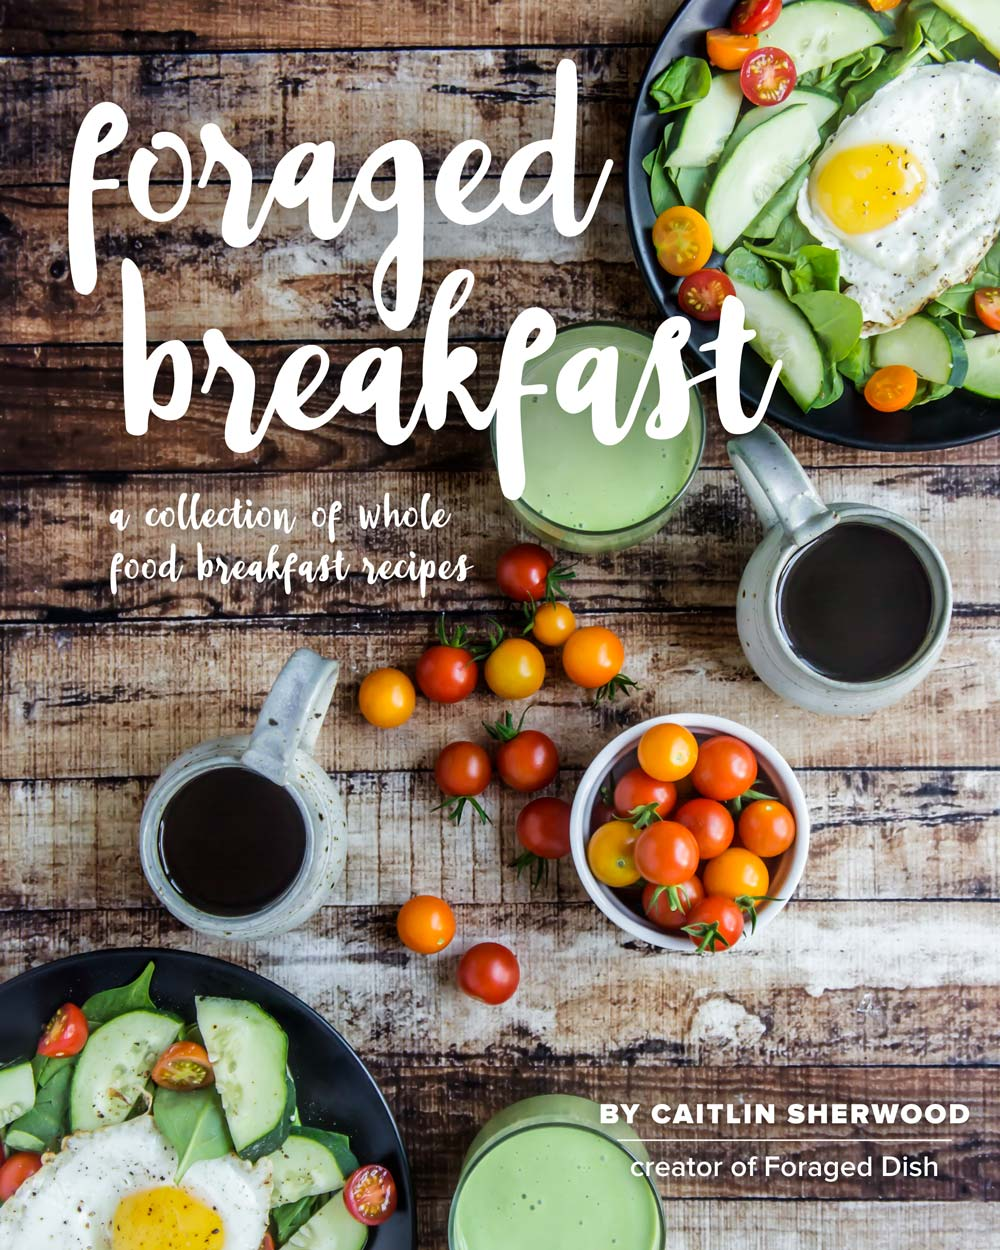 Foraged Breakfast - A Collection of Real Food Breakfast Recipes